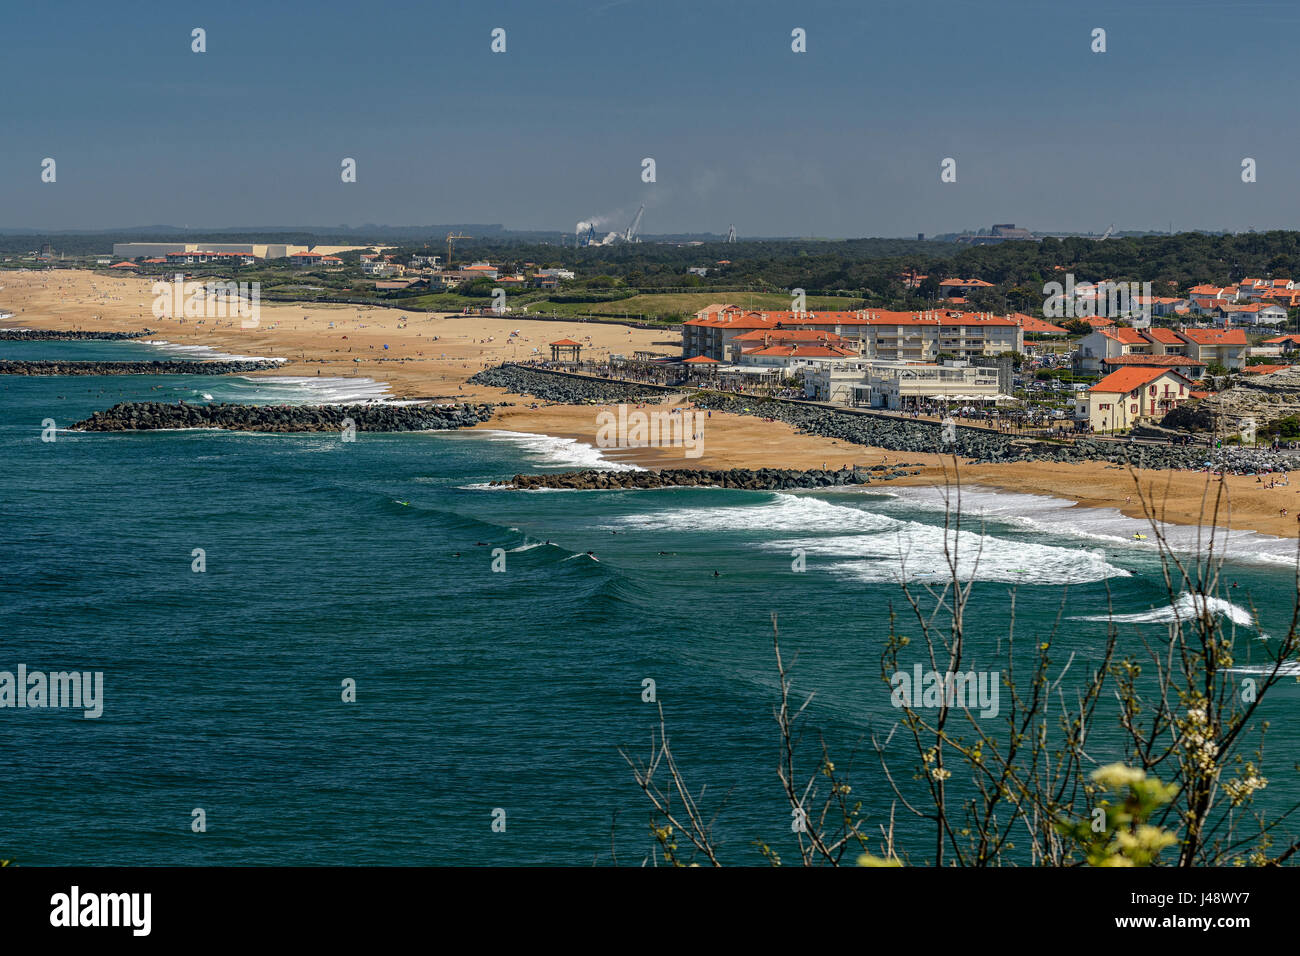 Panoramic view of boulevard des plages in Biarritz, Aquitaine, France, Europe - Stock Image